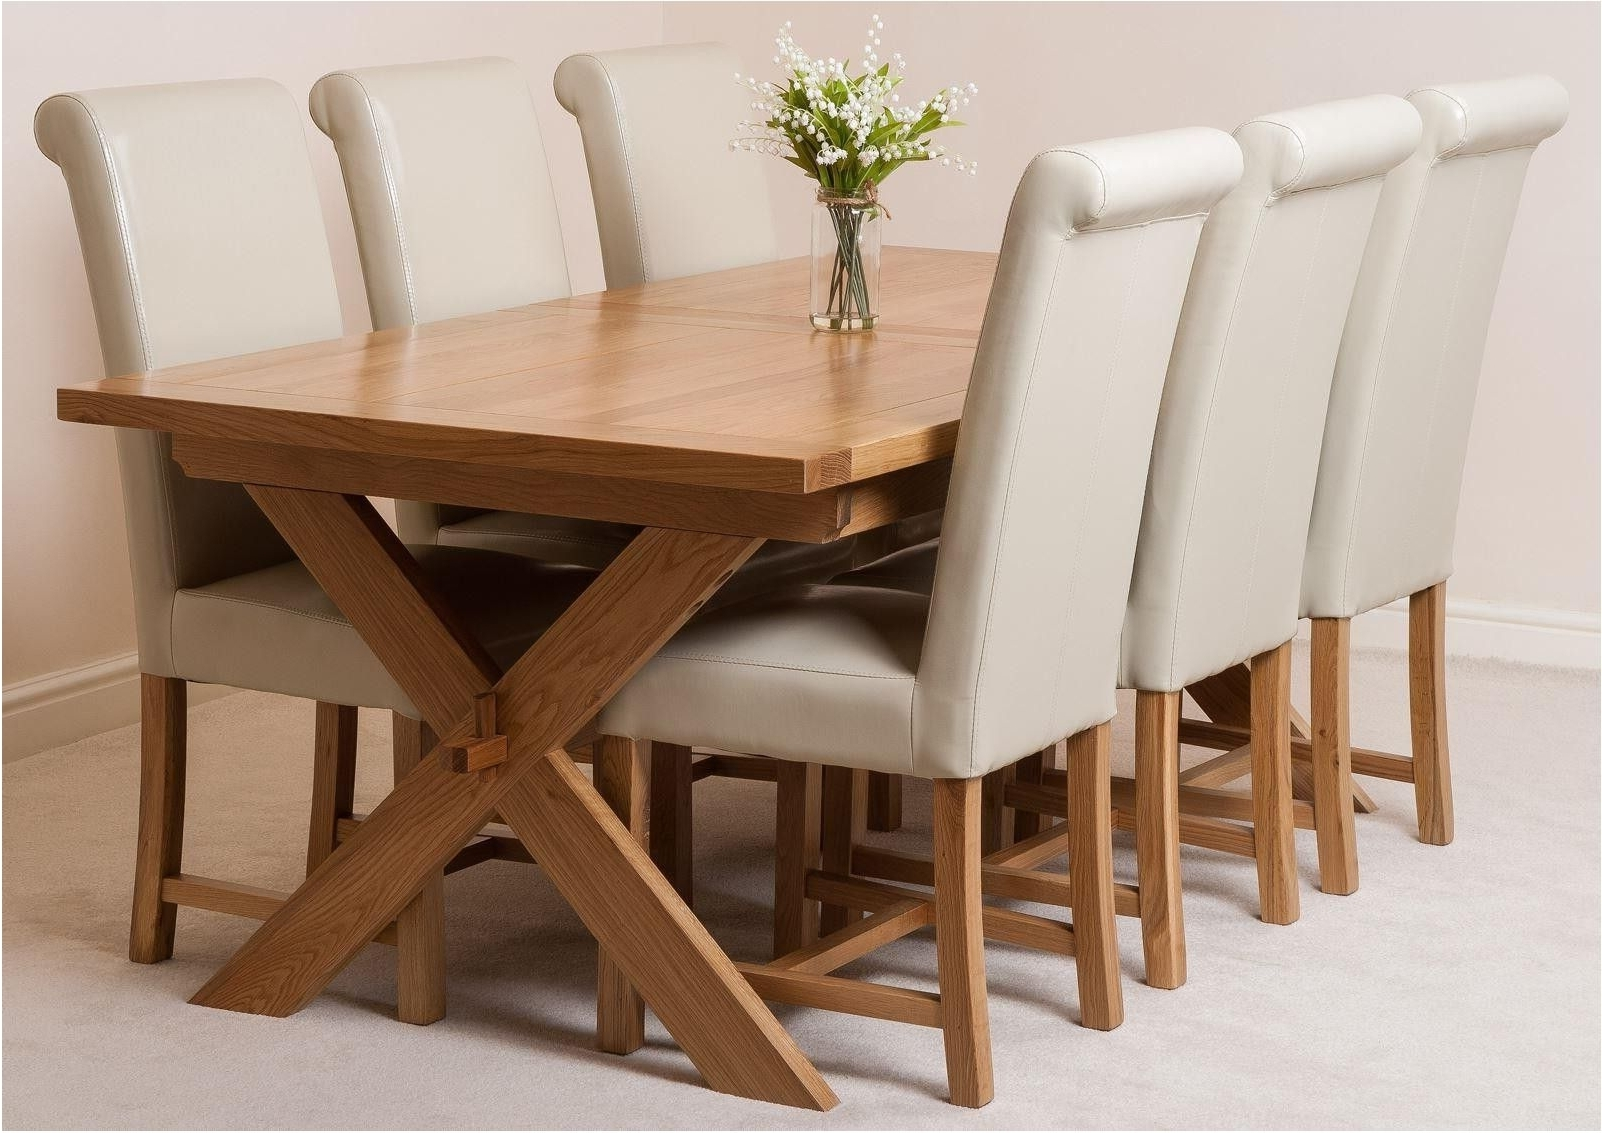 Breathtaking Vermont Extending Oak Dining Table With 6 Black Lola With Regard To Most Current Oak Extending Dining Tables And 6 Chairs (View 4 of 25)